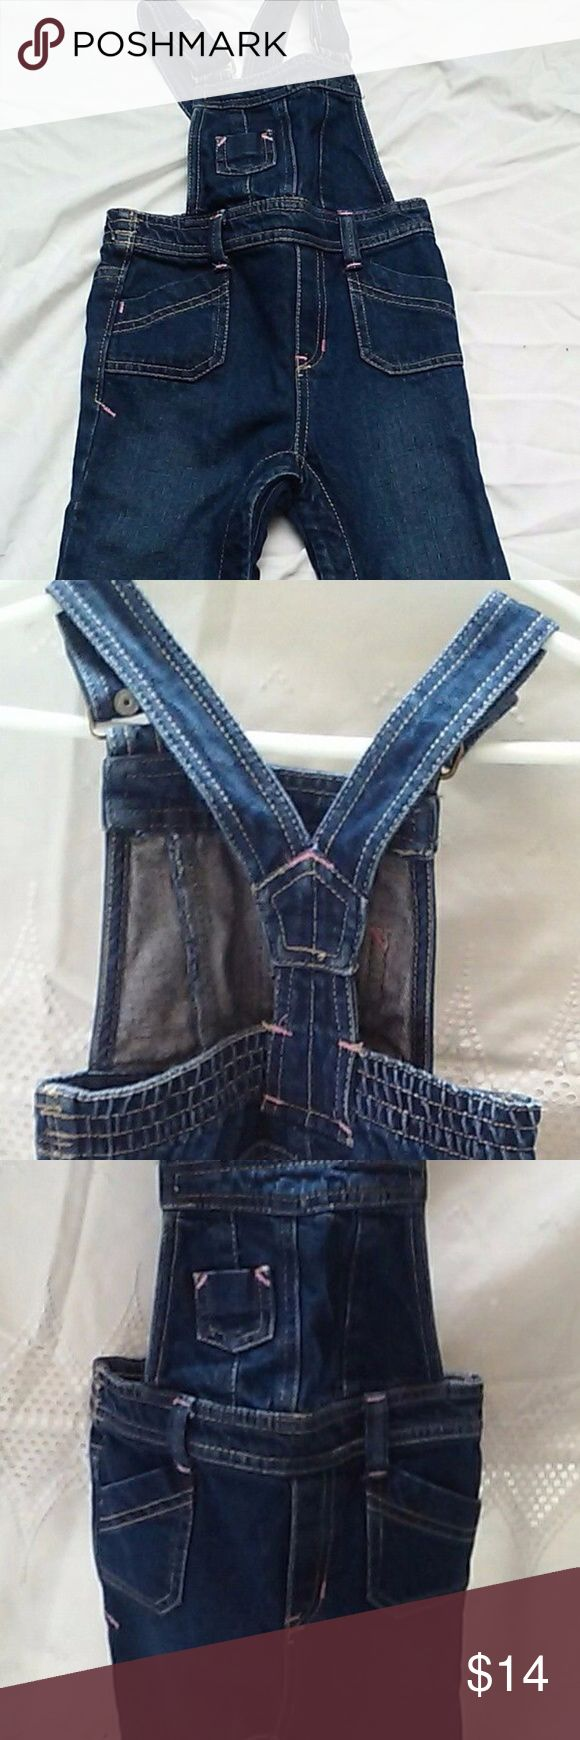 "Old navy Dark Denim Jeans Overalls NEW 18-24mo Up for grabs is a mint condition, new, never worn (no tags) dark denim Old navy coveralls with pink and beige stitching, size 18-24 mo. length from top of shoulder to bottom of pants: 26 1/2"".  Smoke-free pet-free home. Old Navy Bottoms Overalls"